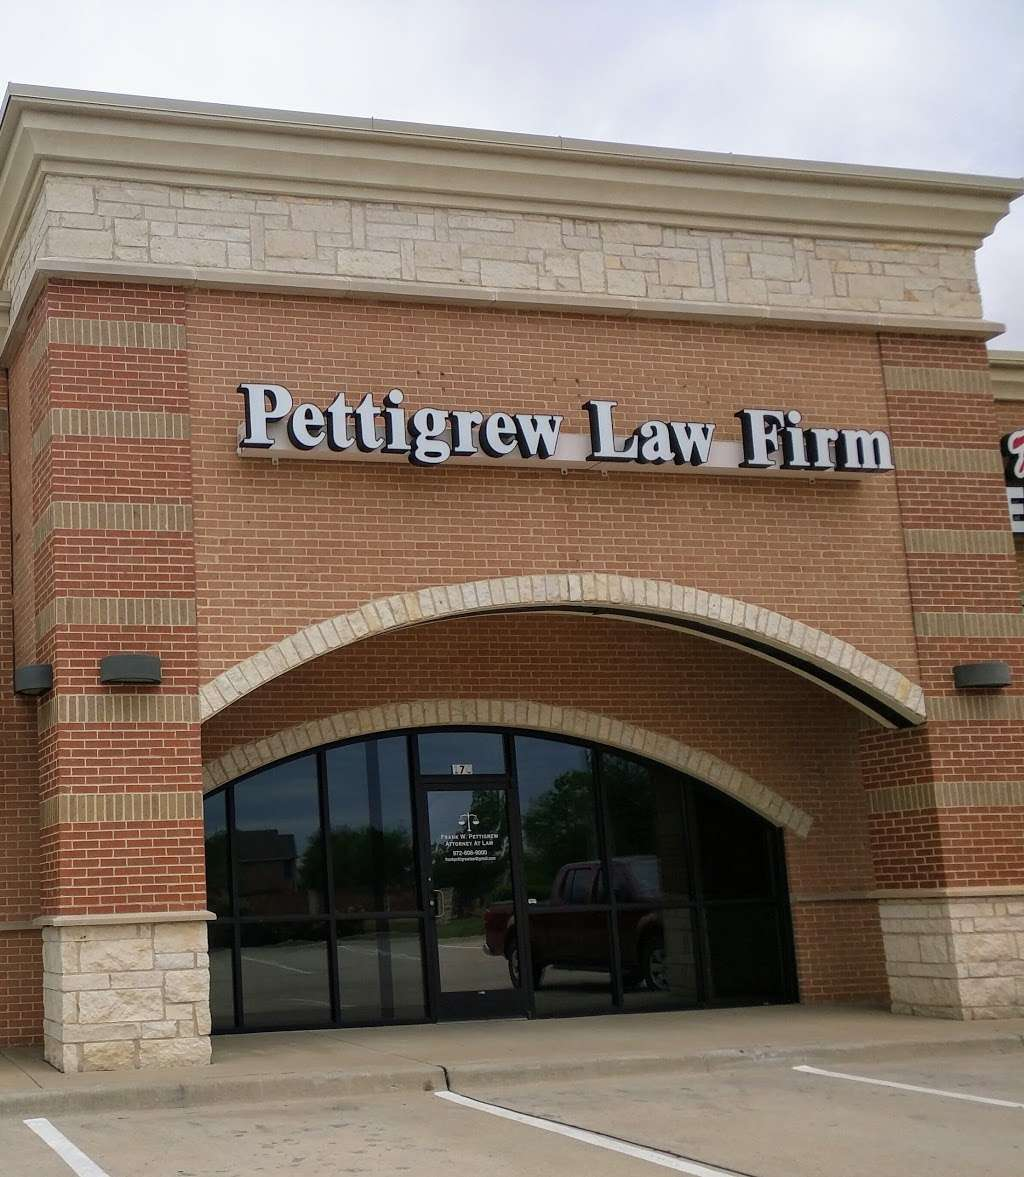 The Pettigrew Law Firm, 840 S Carrier Pkwy, Grand Prairie